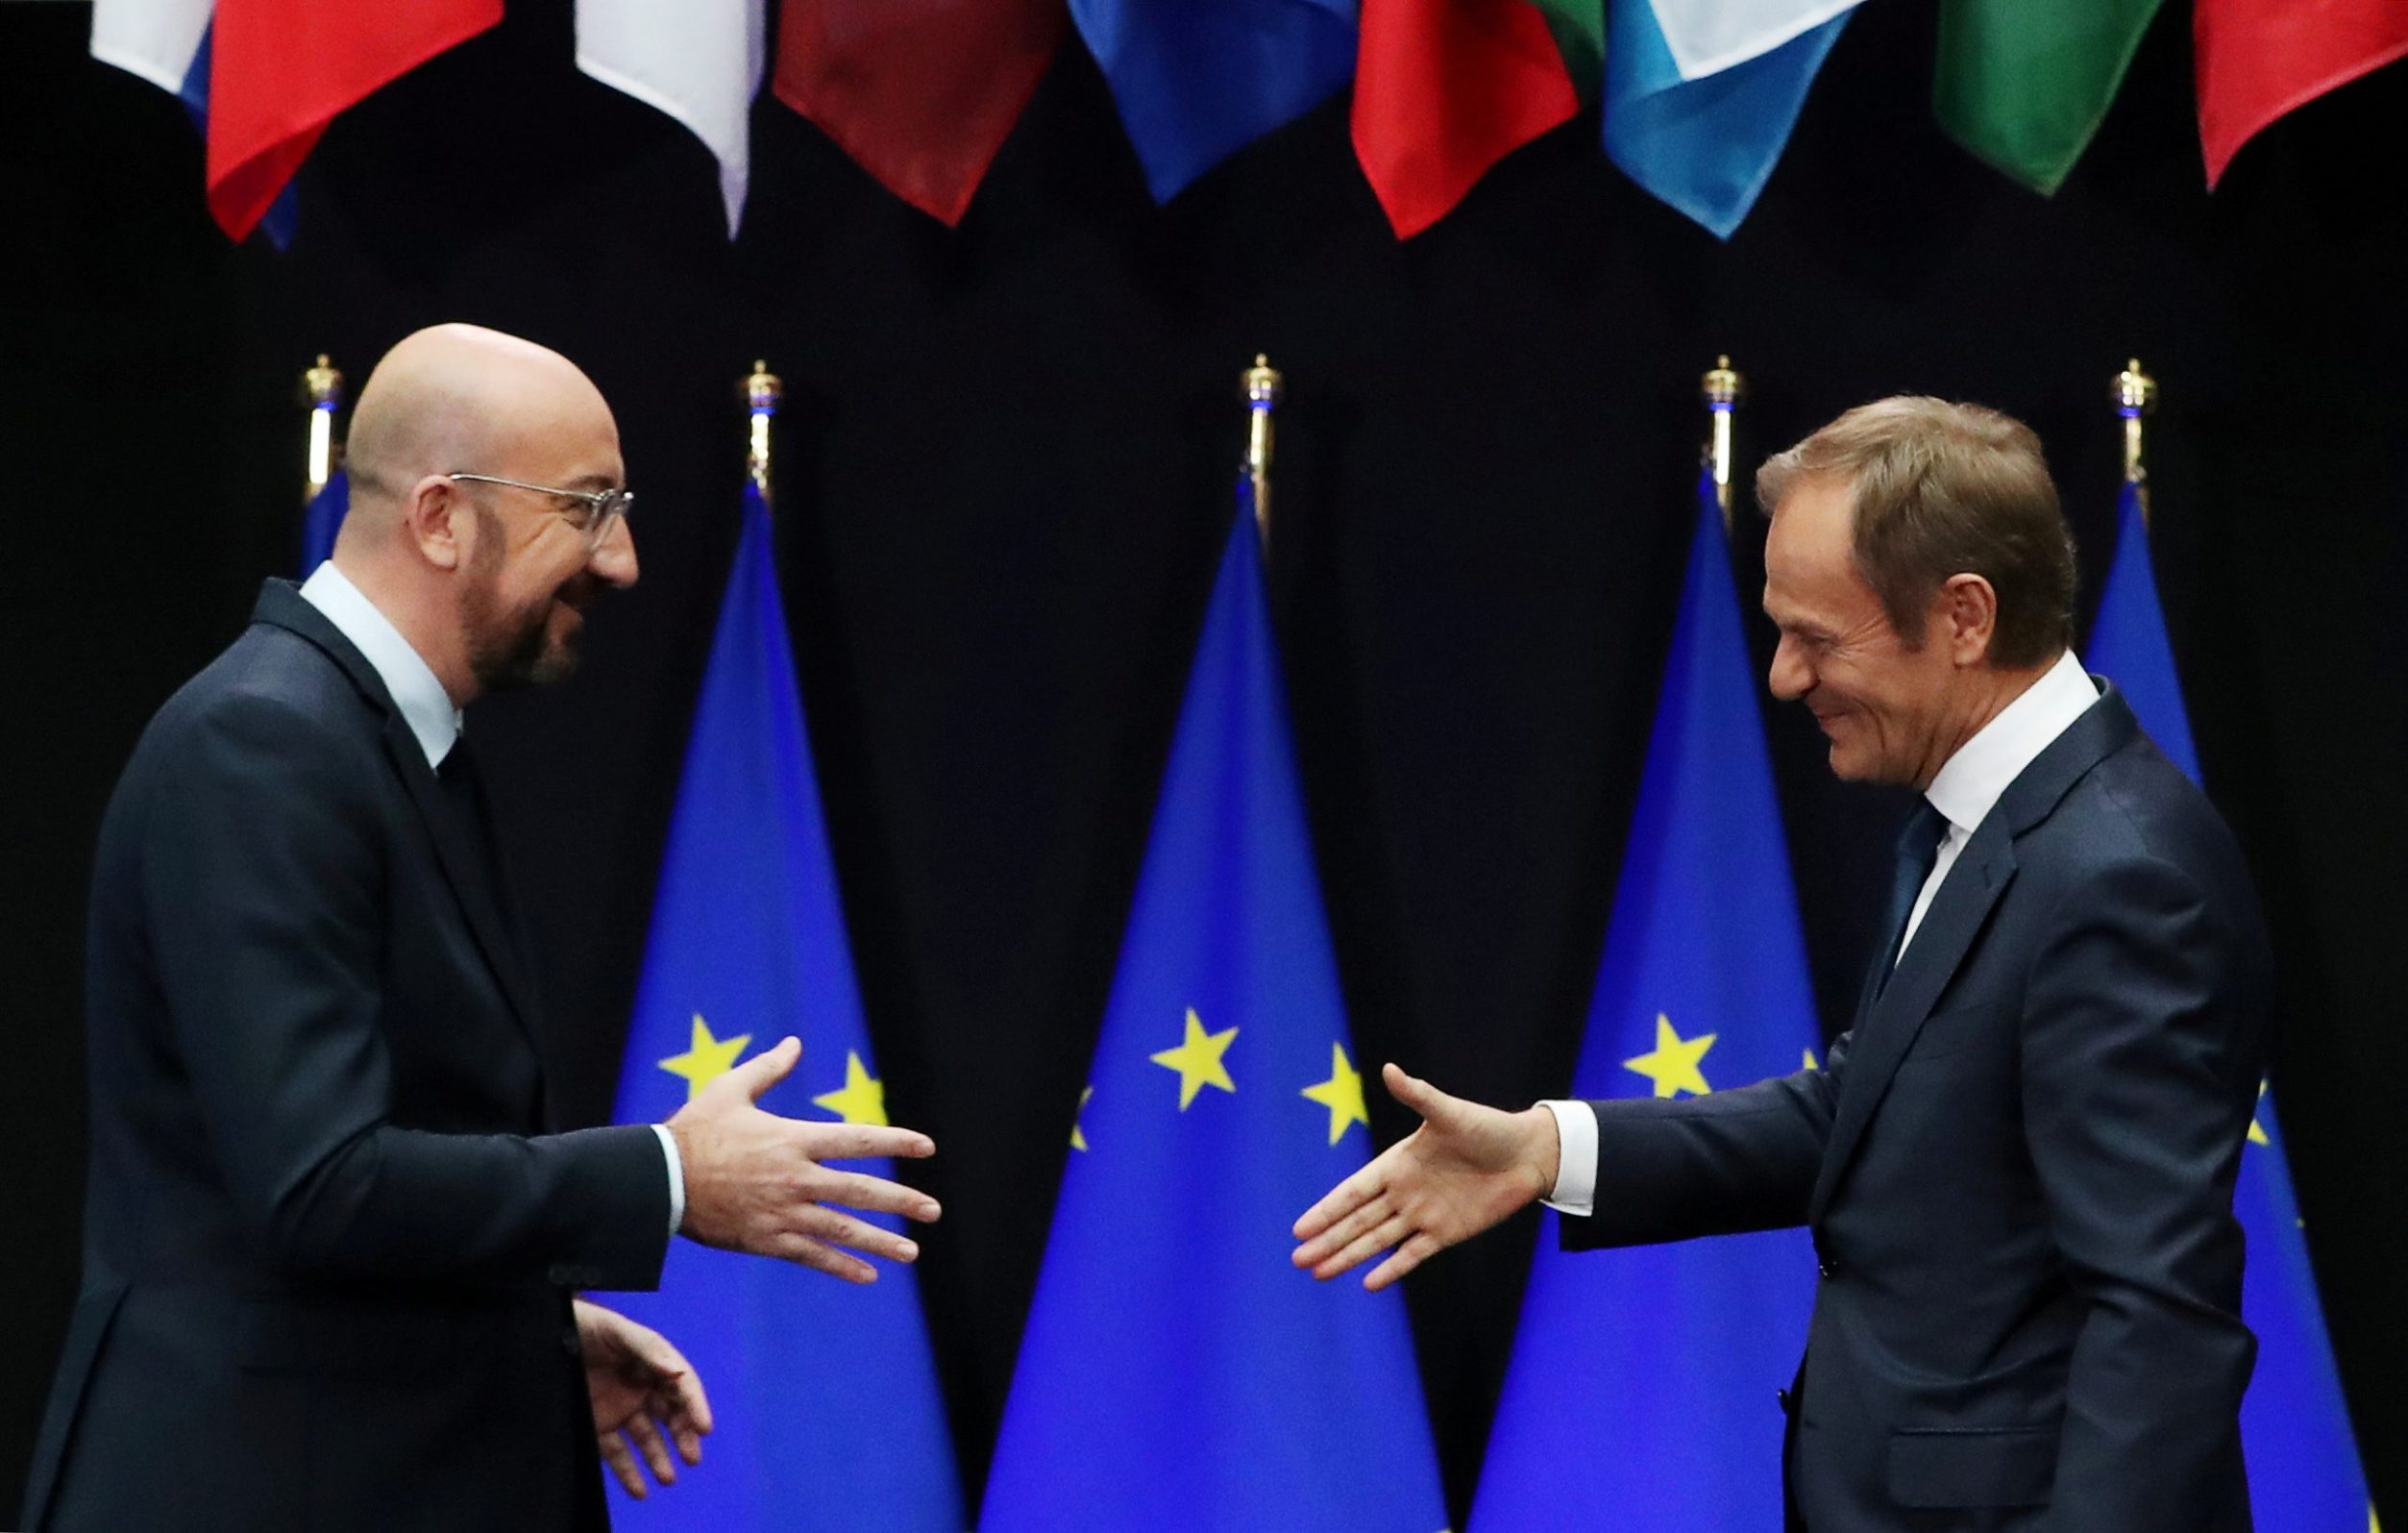 Incoming European Council President Charles Michel and outgoing European Council President Donald Tusk attend a handover ceremony in Brussels, Belgium November 29, 2019. REUTERS/Yves Herman     TPX IMAGES OF THE DAY